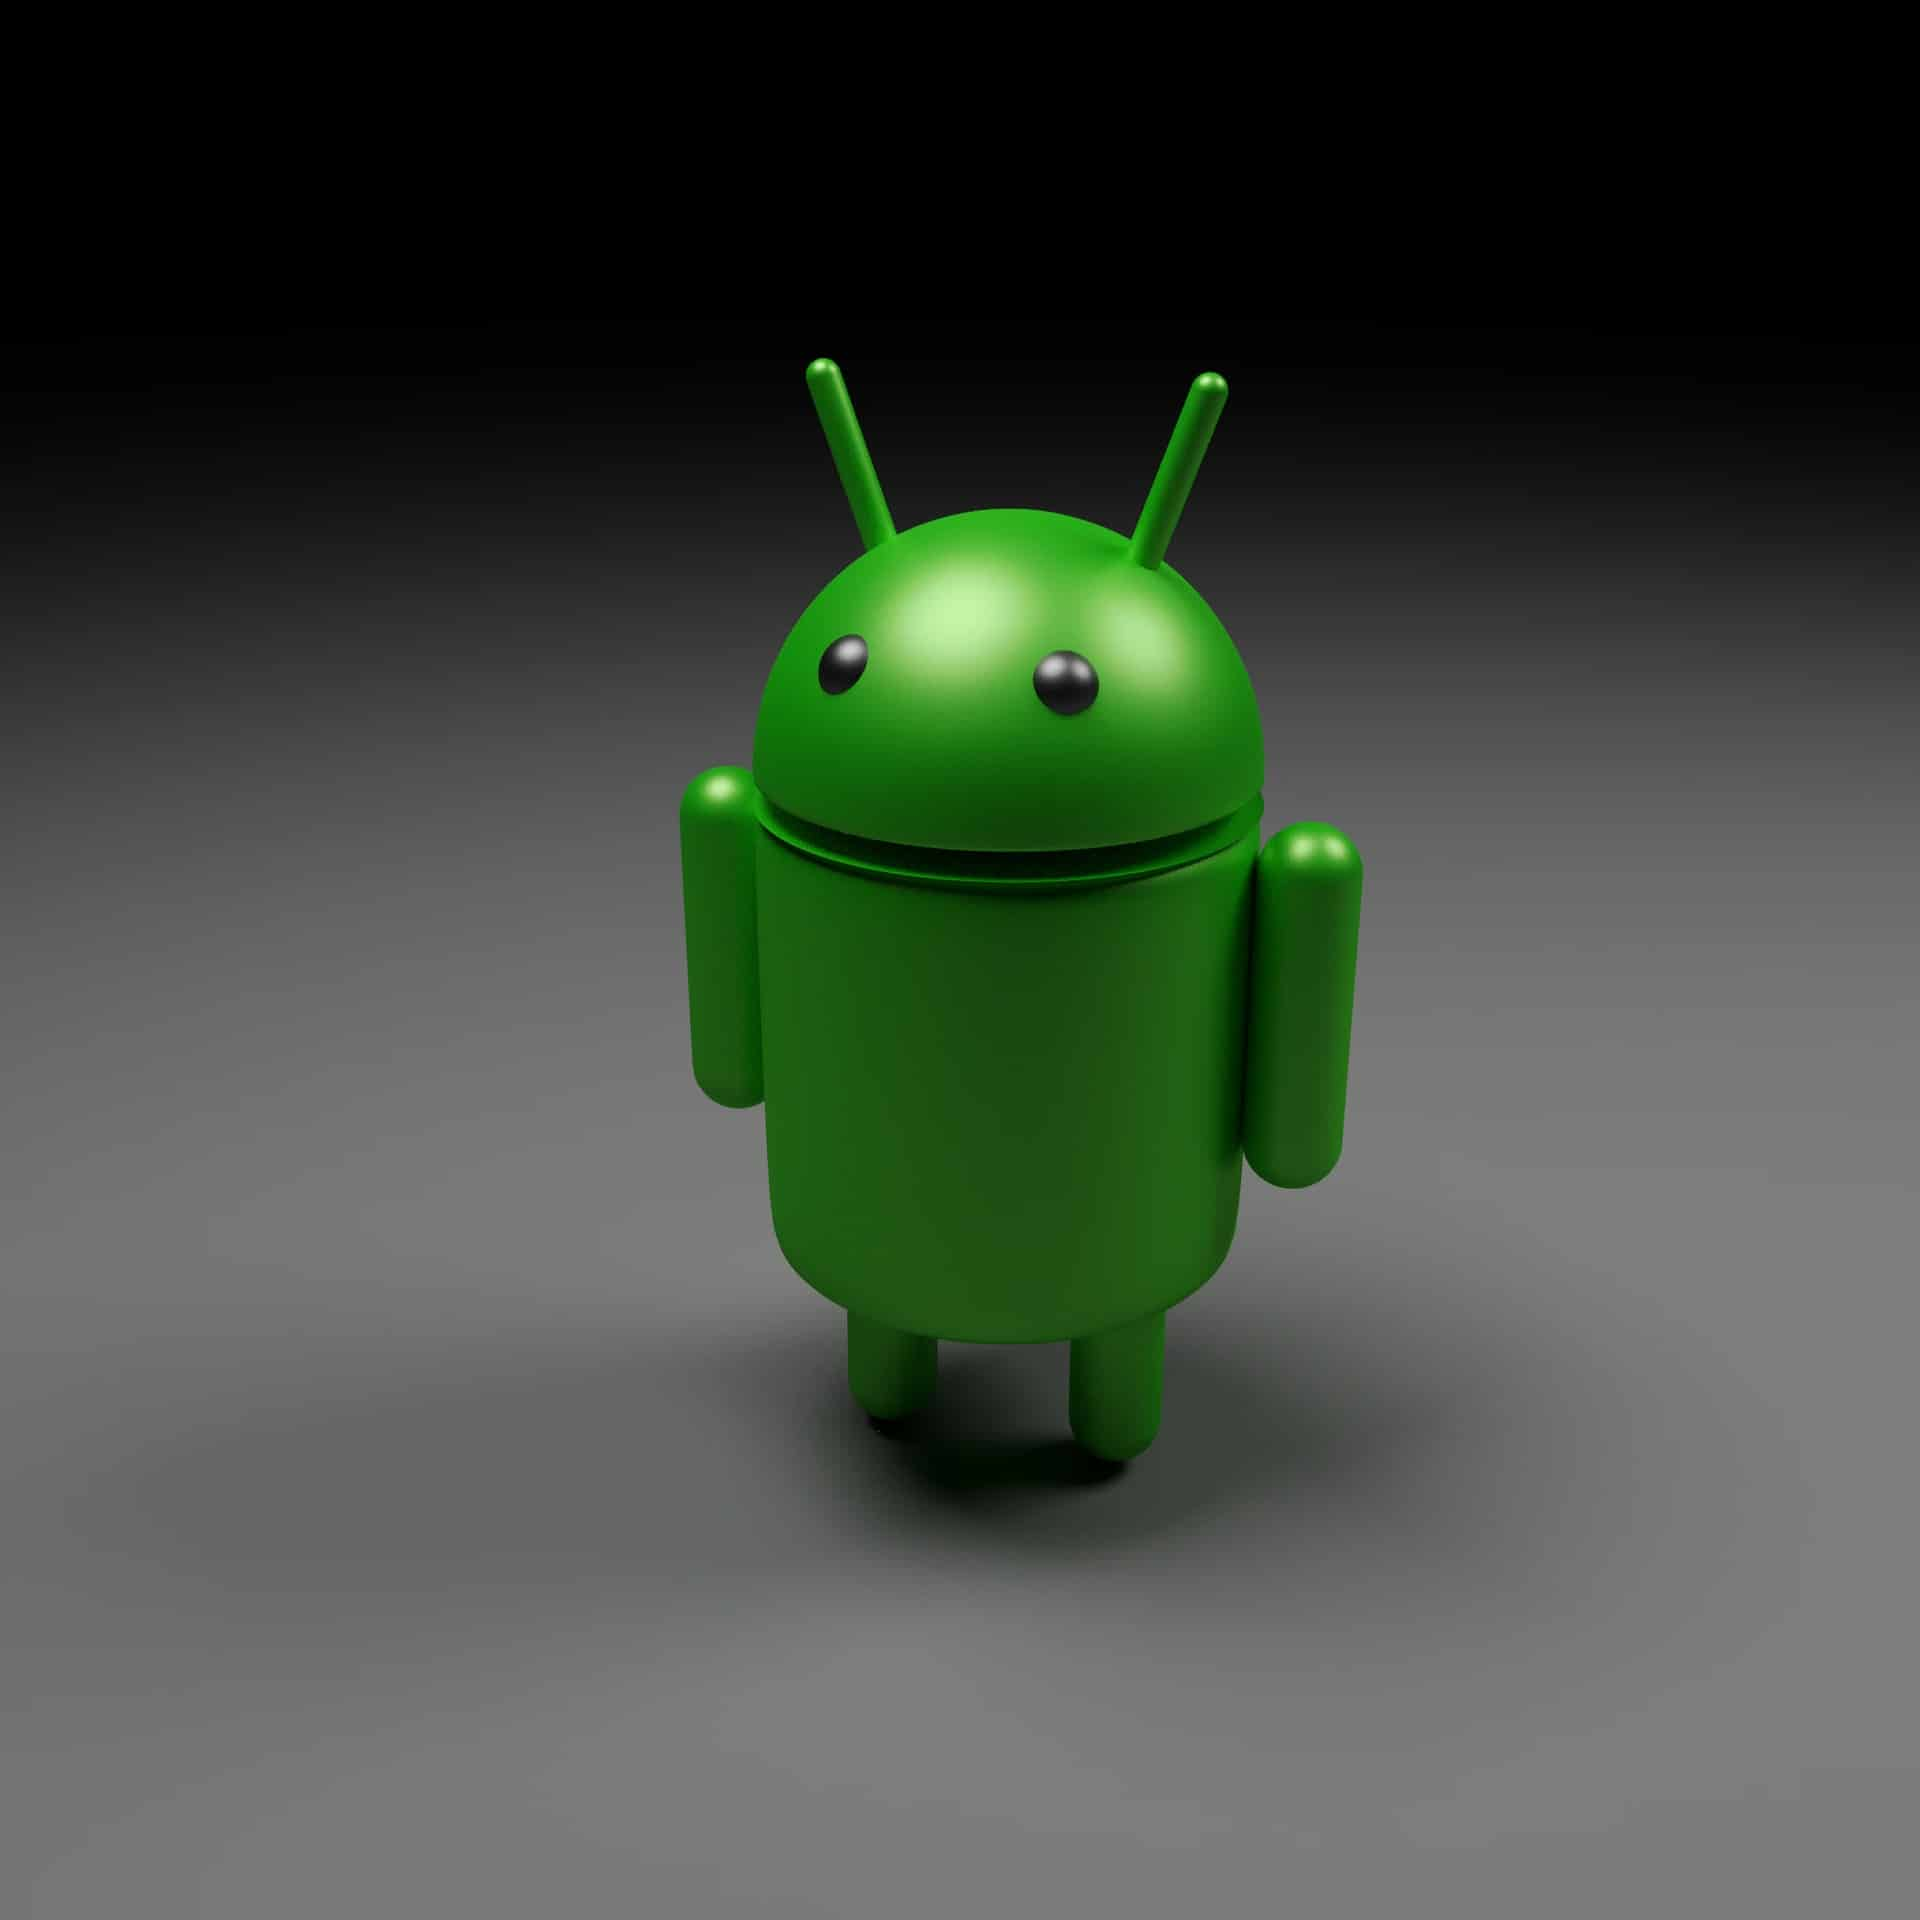 android - alignthoughts.com